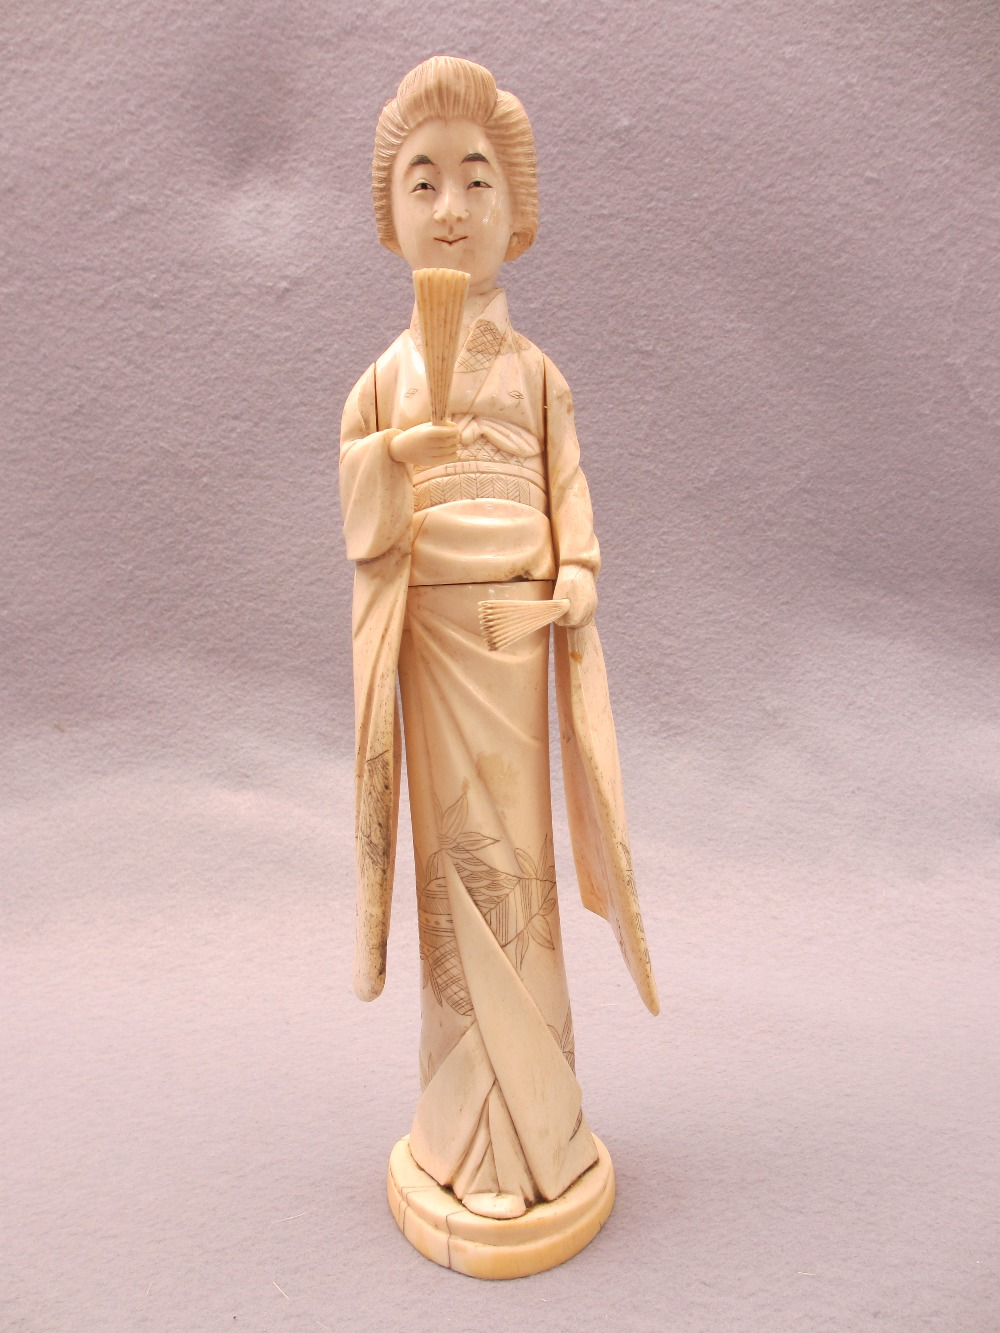 JAPANESE & OTHER IVORY & BONE OKIMONO, FOUR ITEMS - a standing sectional figurine of a Geisha girl - Image 3 of 5